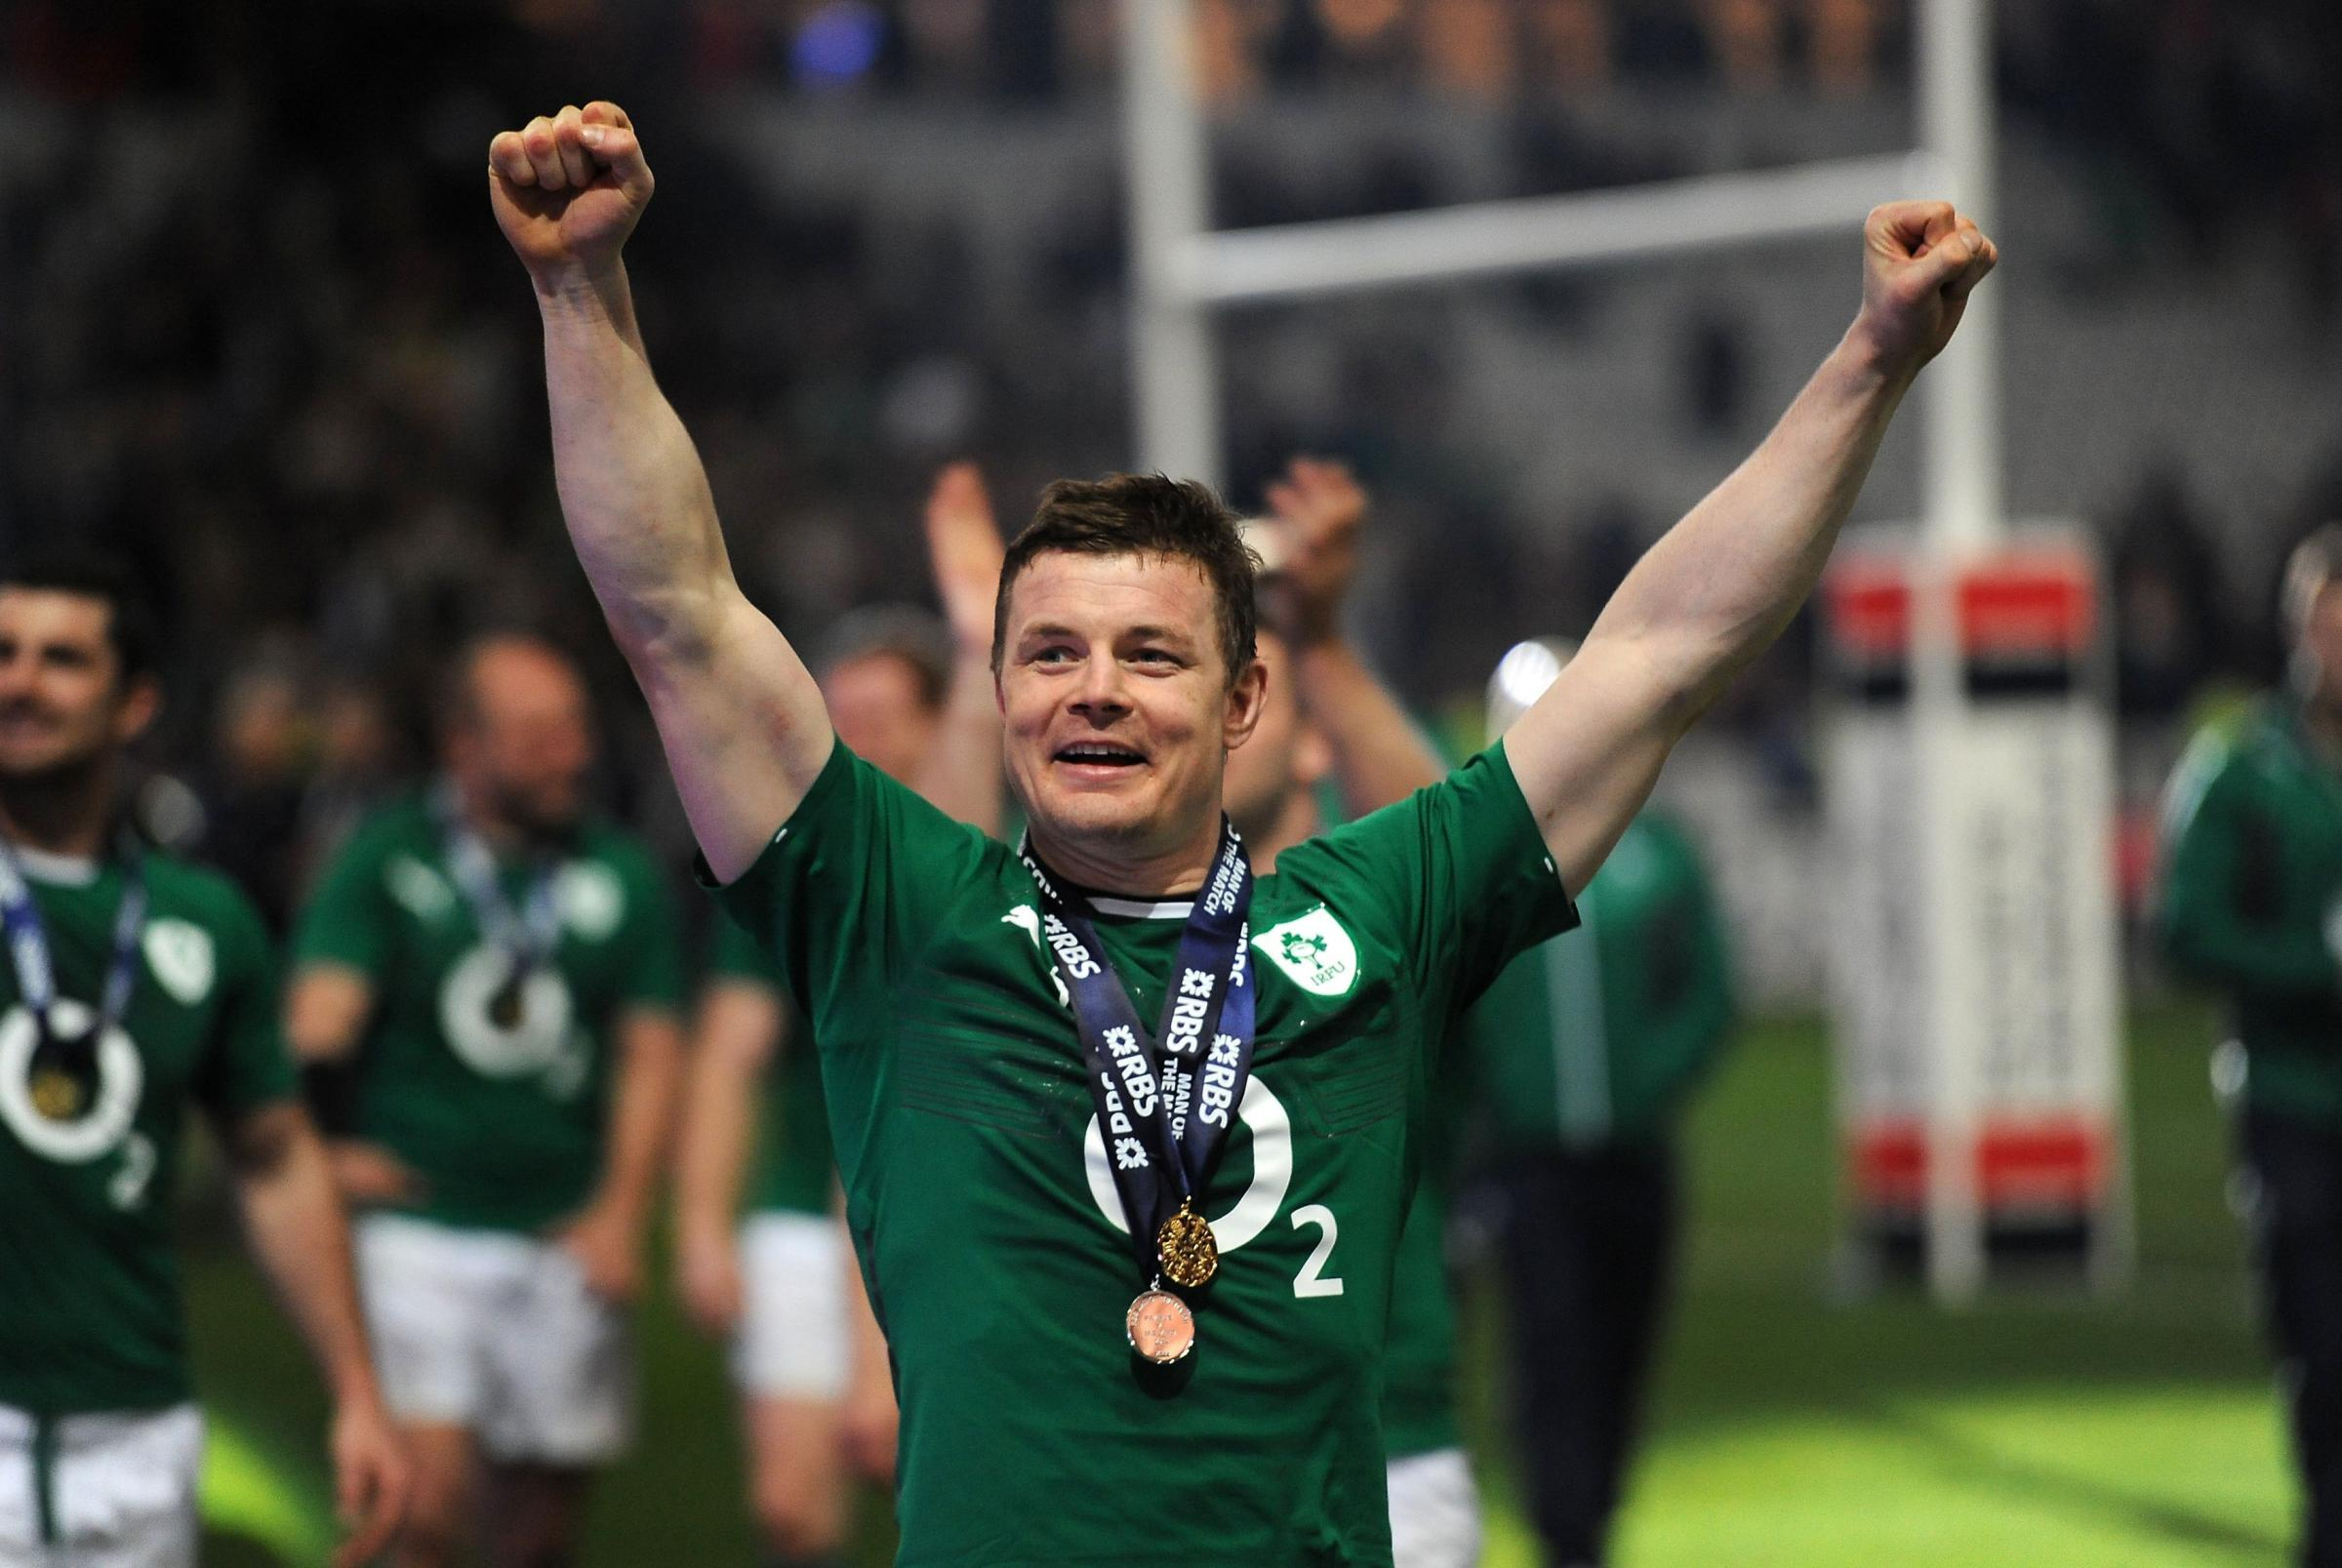 Brian O'Driscoll celebrating another great conquest in the green jersey of his native Ireland